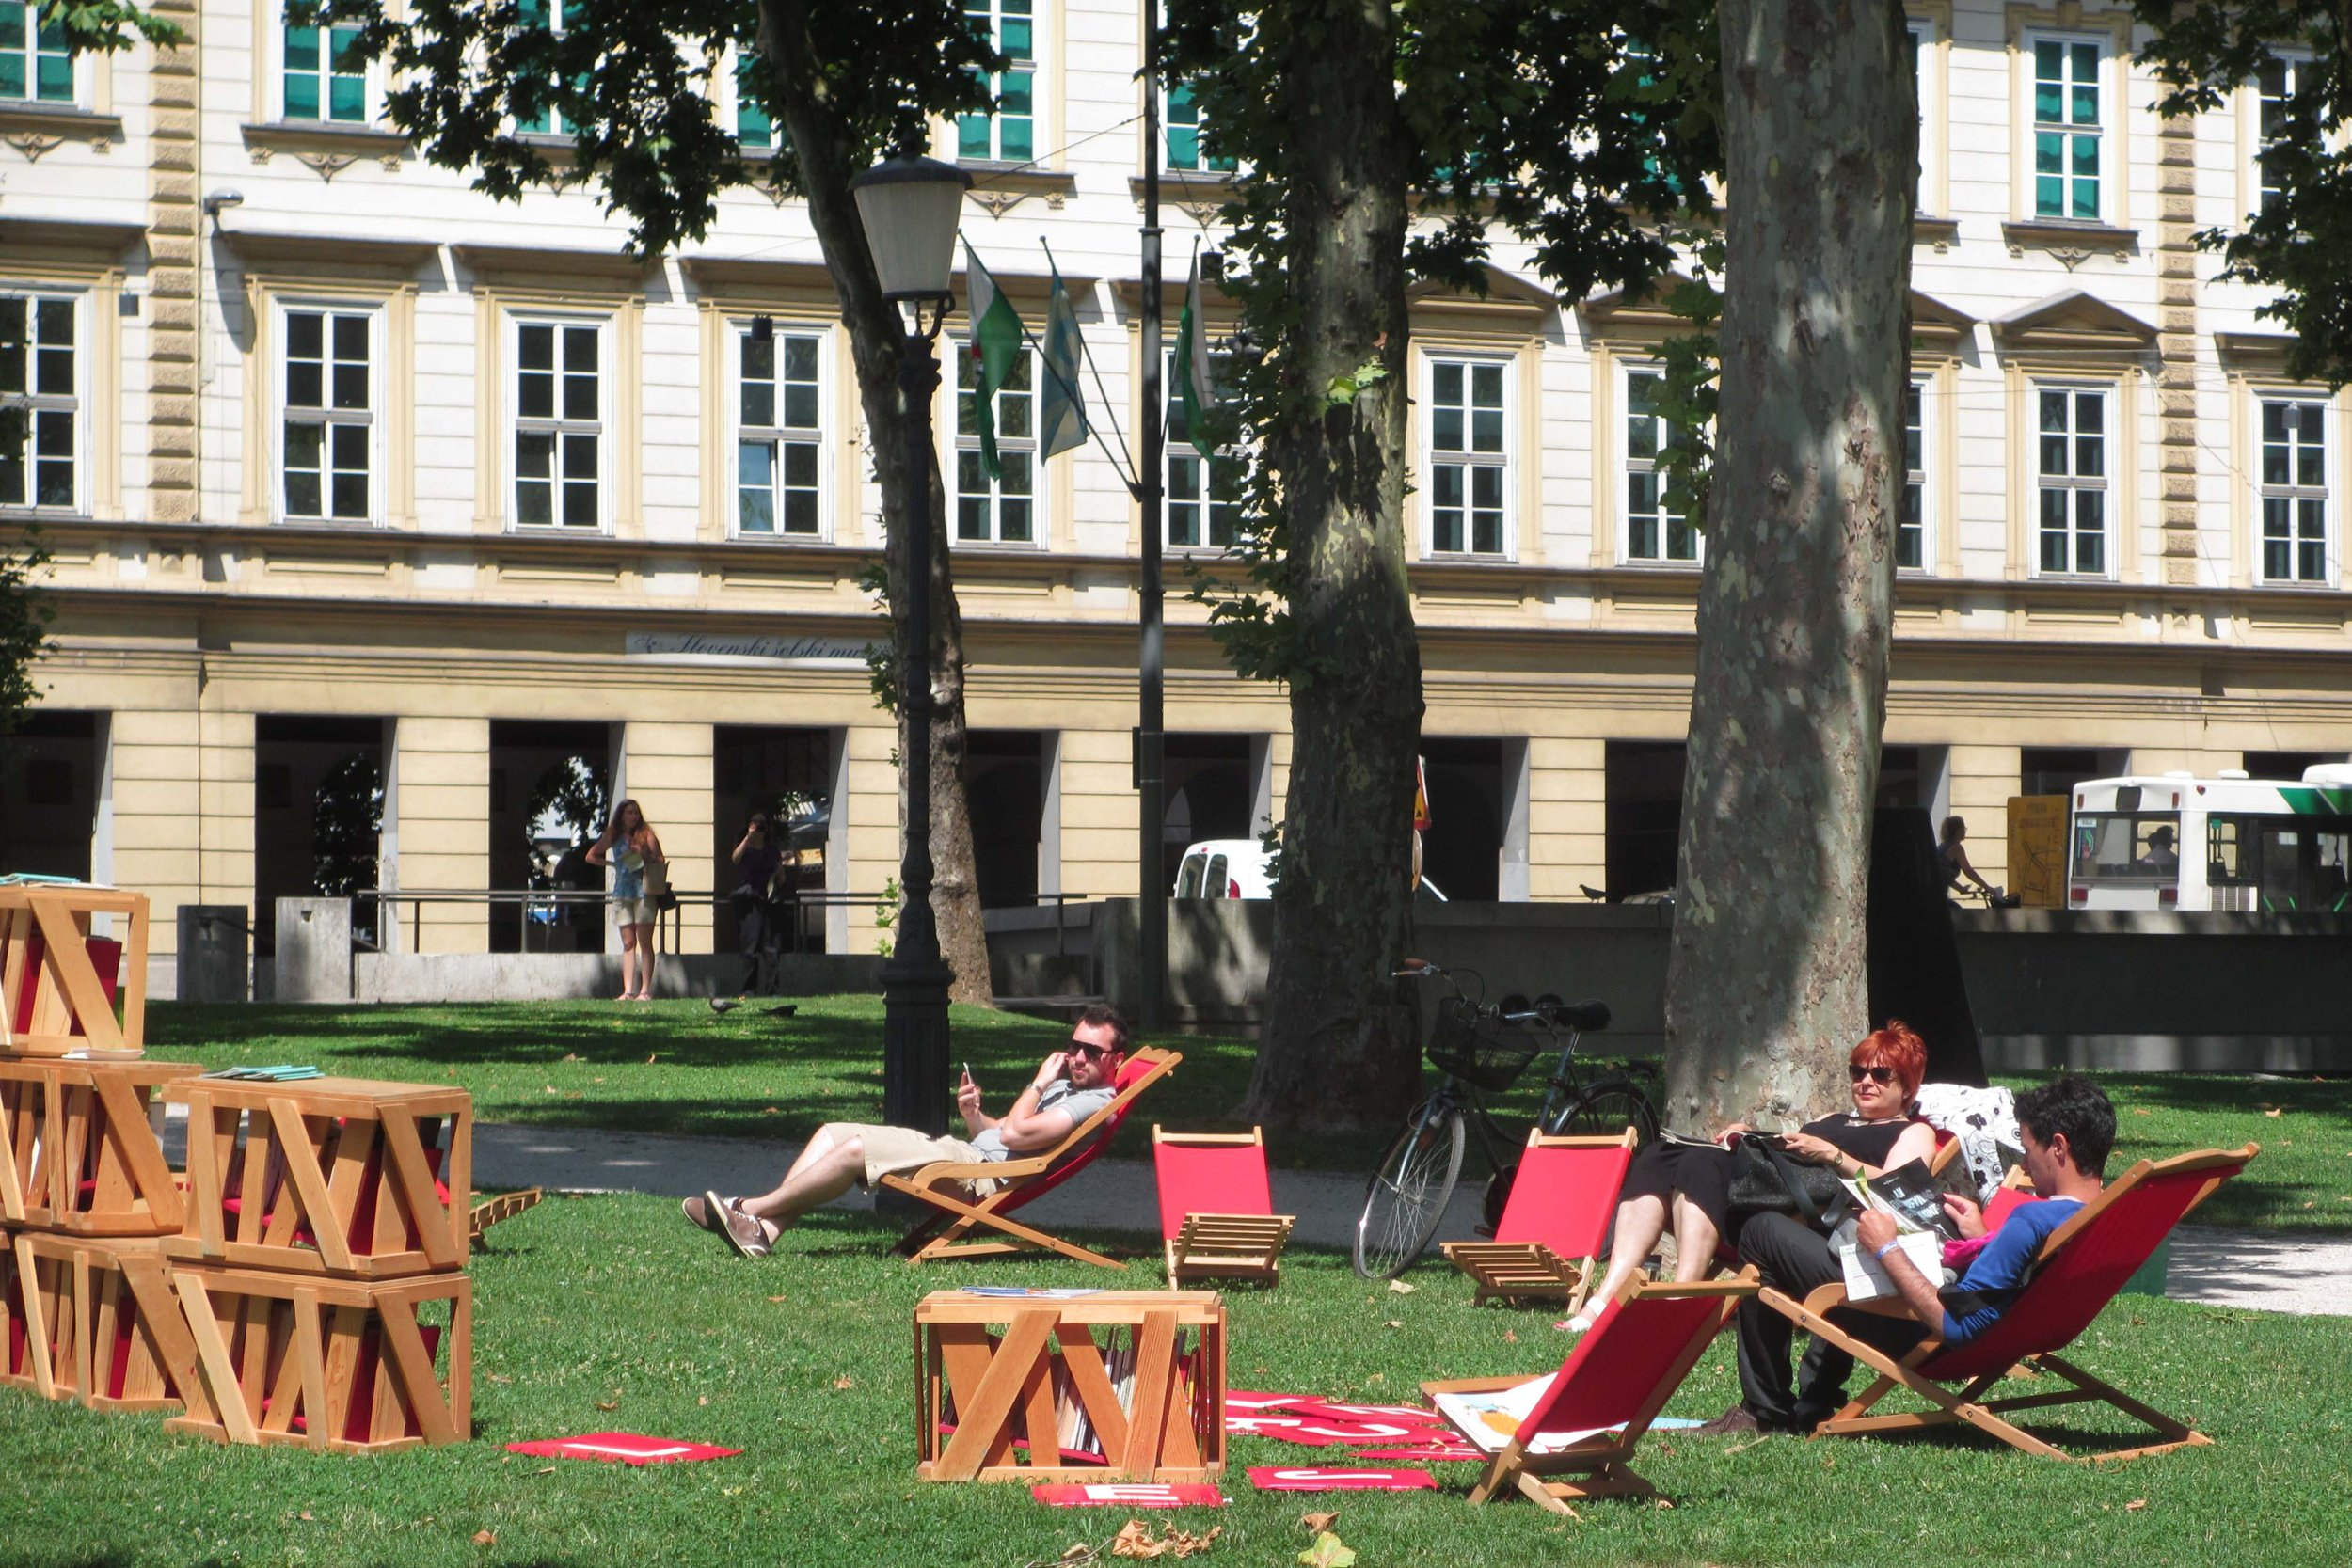 Ljubljana hosts a Library Under The Treetops in city parks from May to August, providing the perfect opportunity to take some time out in a green space with a book © Sarah Reid